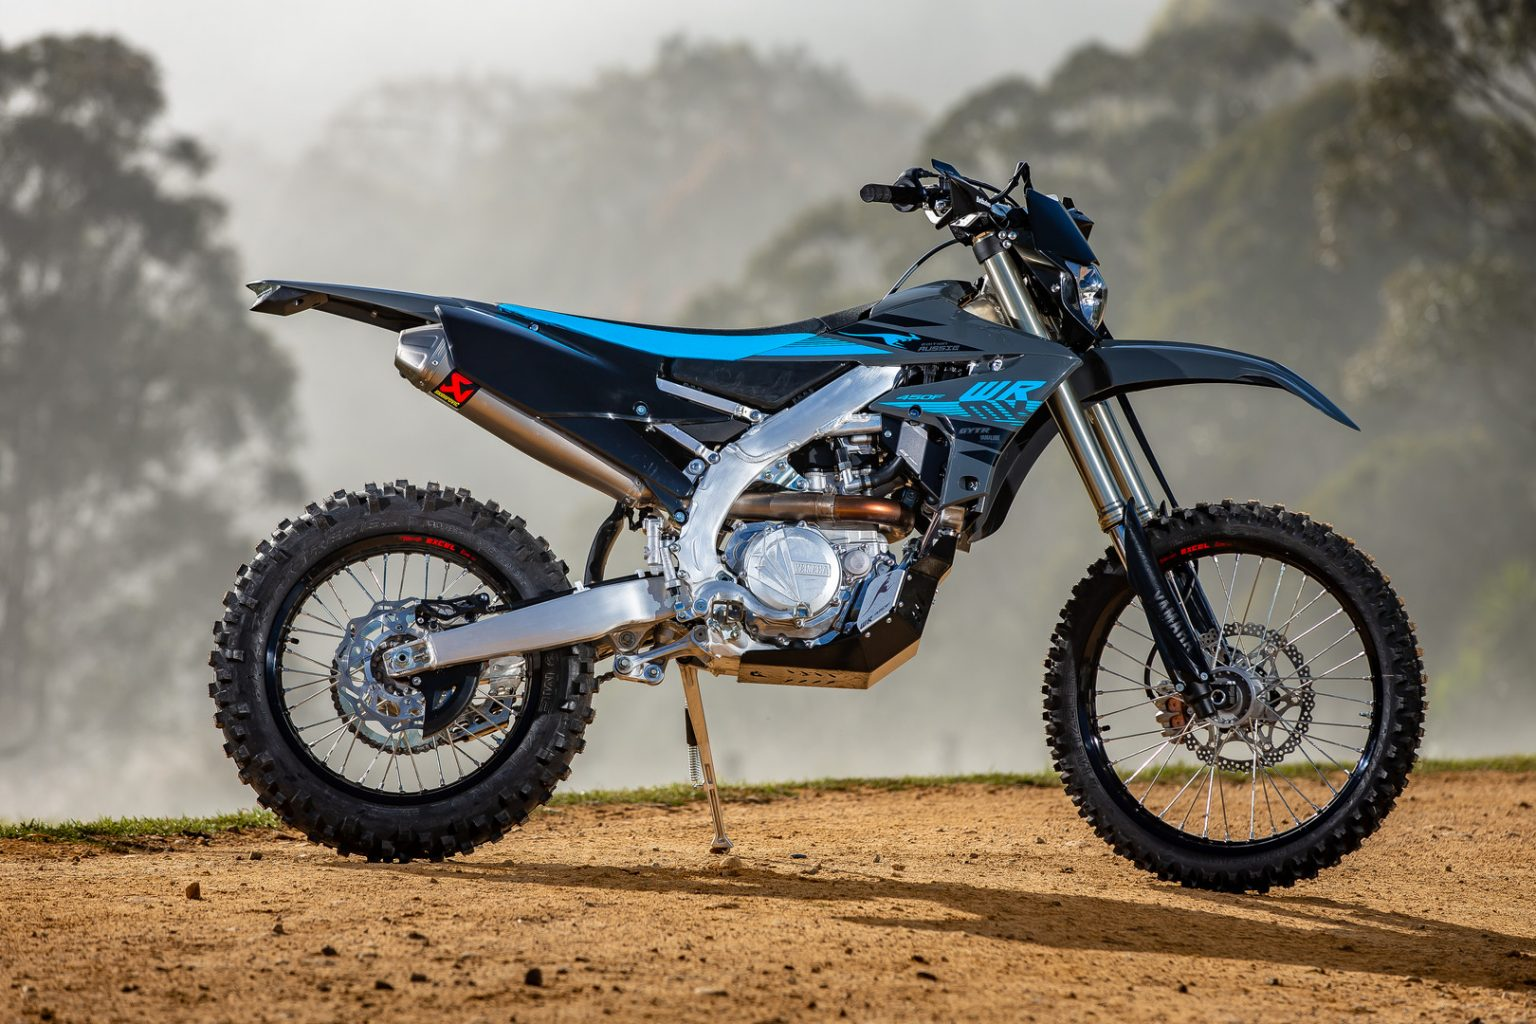 Yamaha Wr 450f motorcycles for sale in Rapid City, South